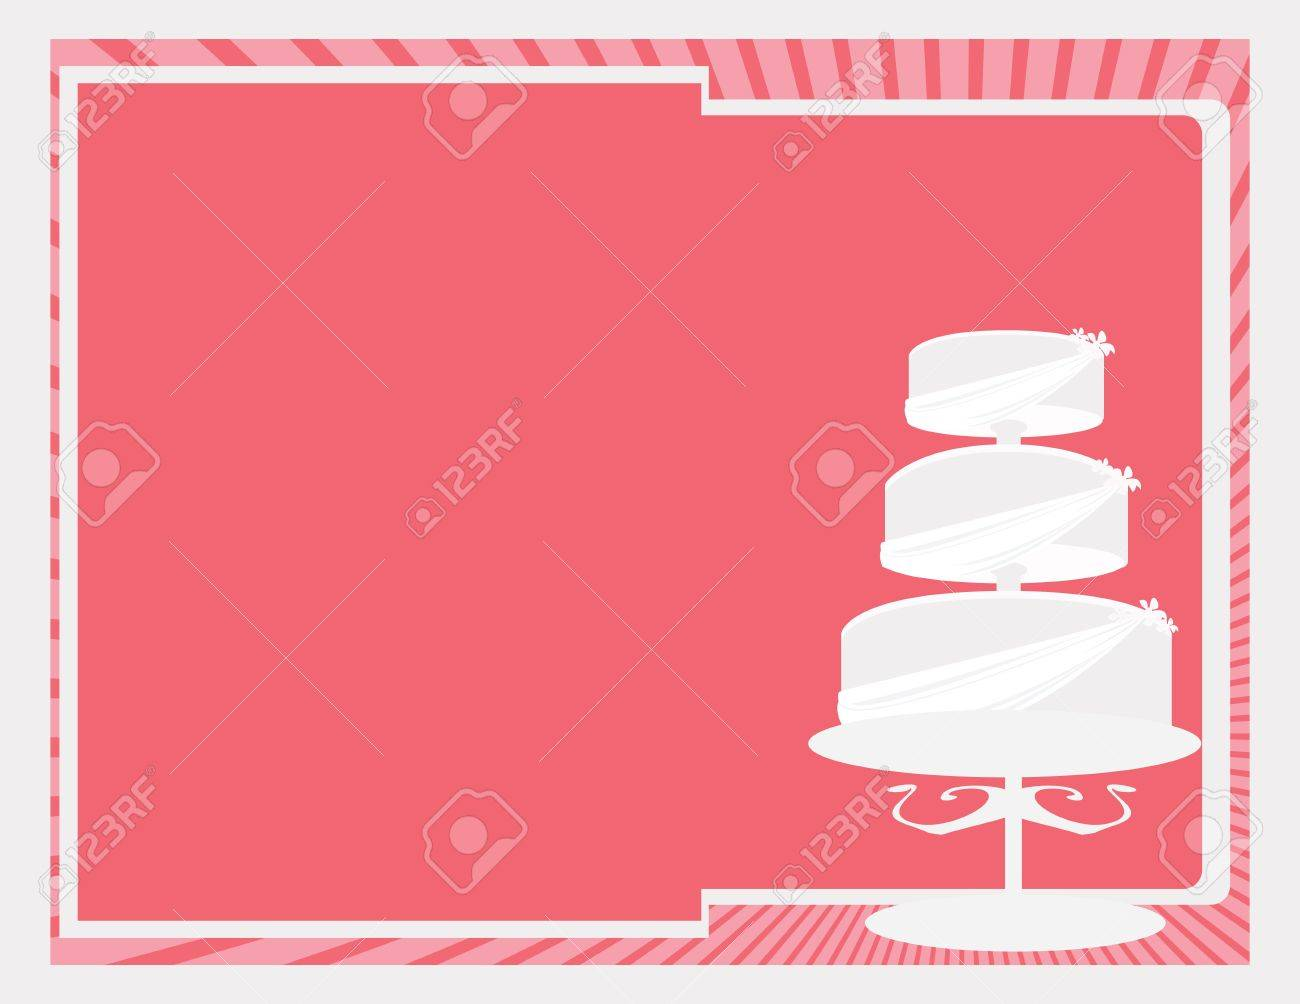 Near white three tier cake on a pink background - 7315114